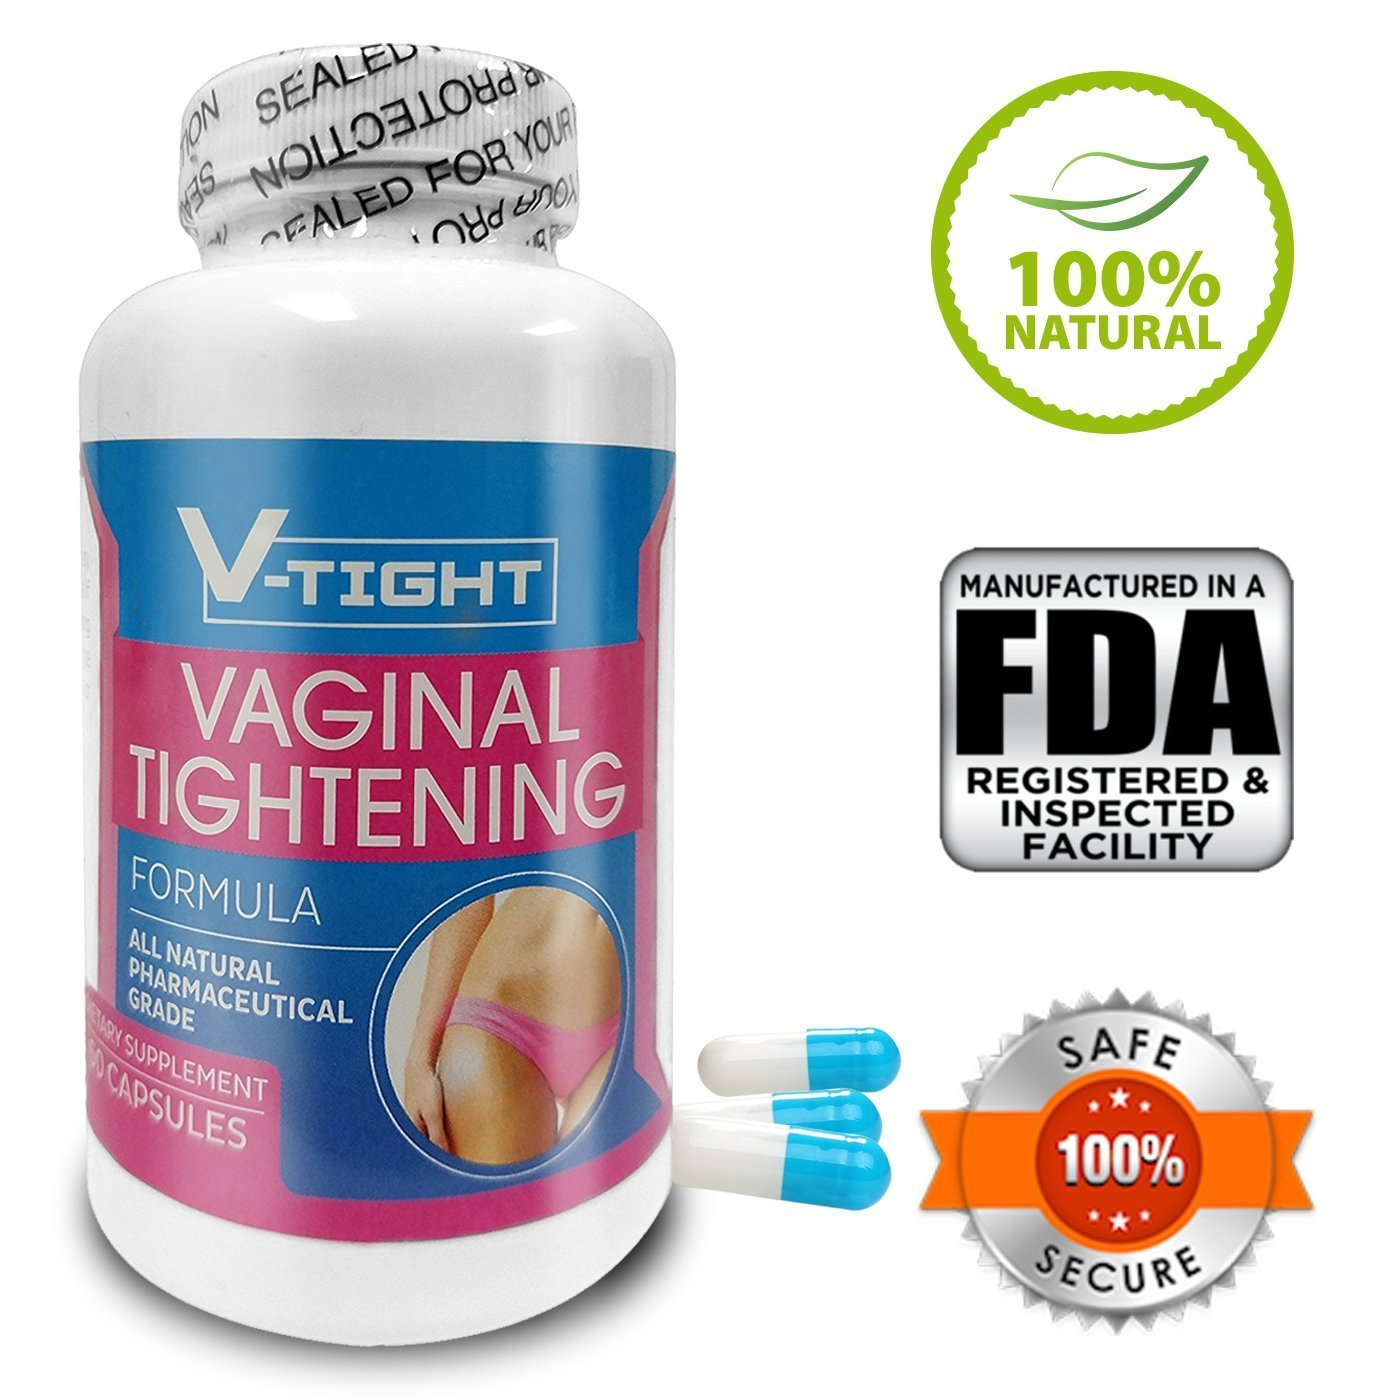 Vagina Tightening Pills V-Tight All Natural Formula (60 Capsules/1-Month Supply) | Pharmaceutical Grade Dietary Vagina Firming Supplement | Women's Sexual Enhancement, Lubrication & Libido